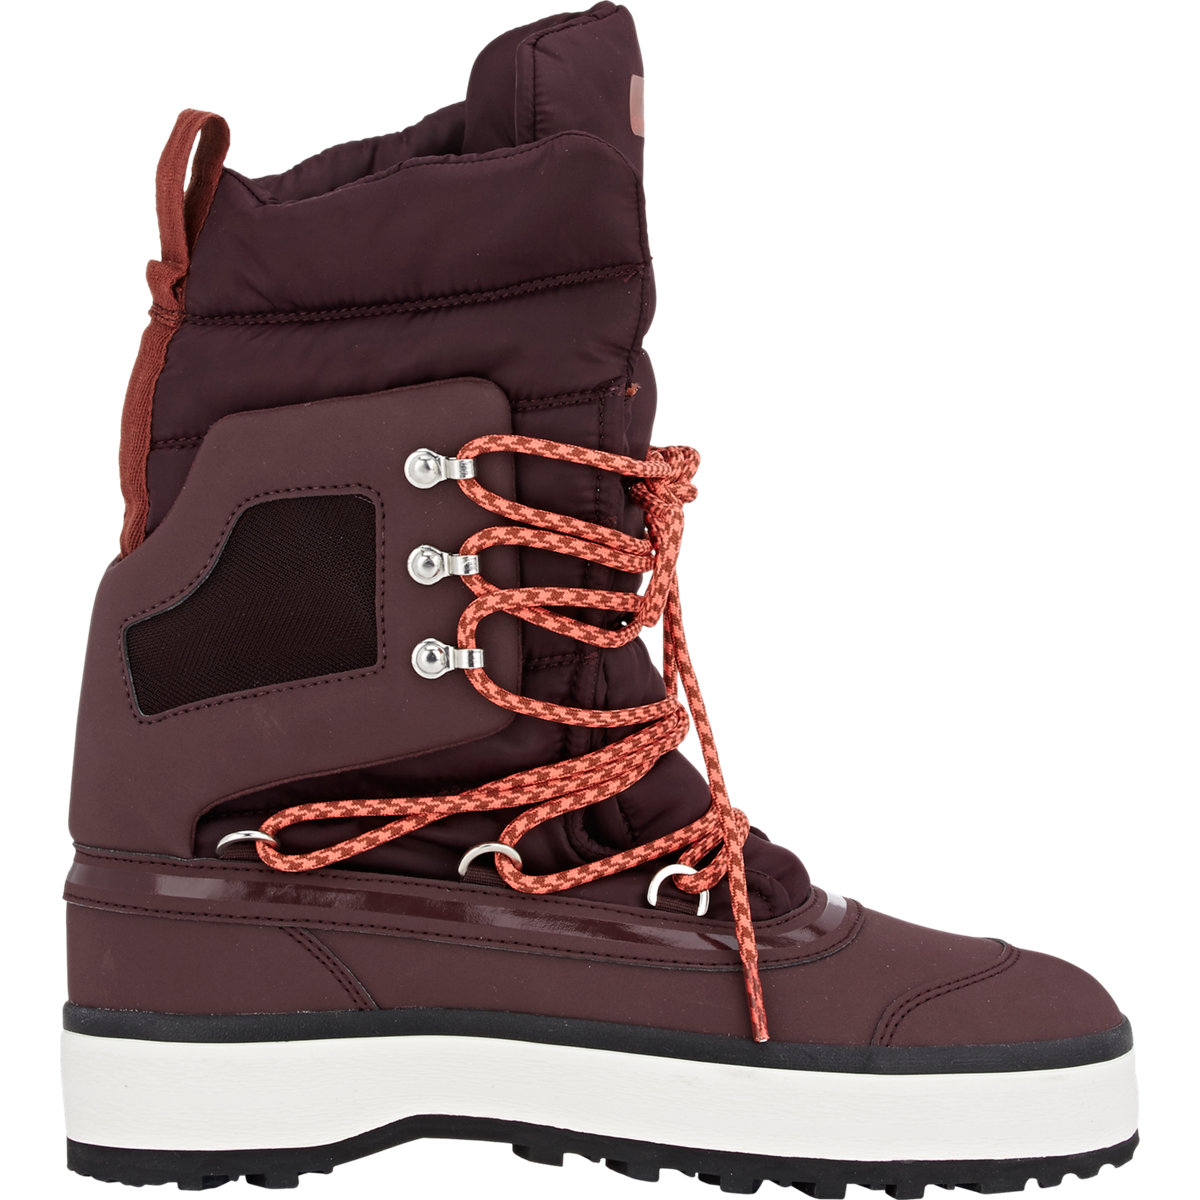 Adidas by stella mccartney Women's Winter Boots in Red | Lyst